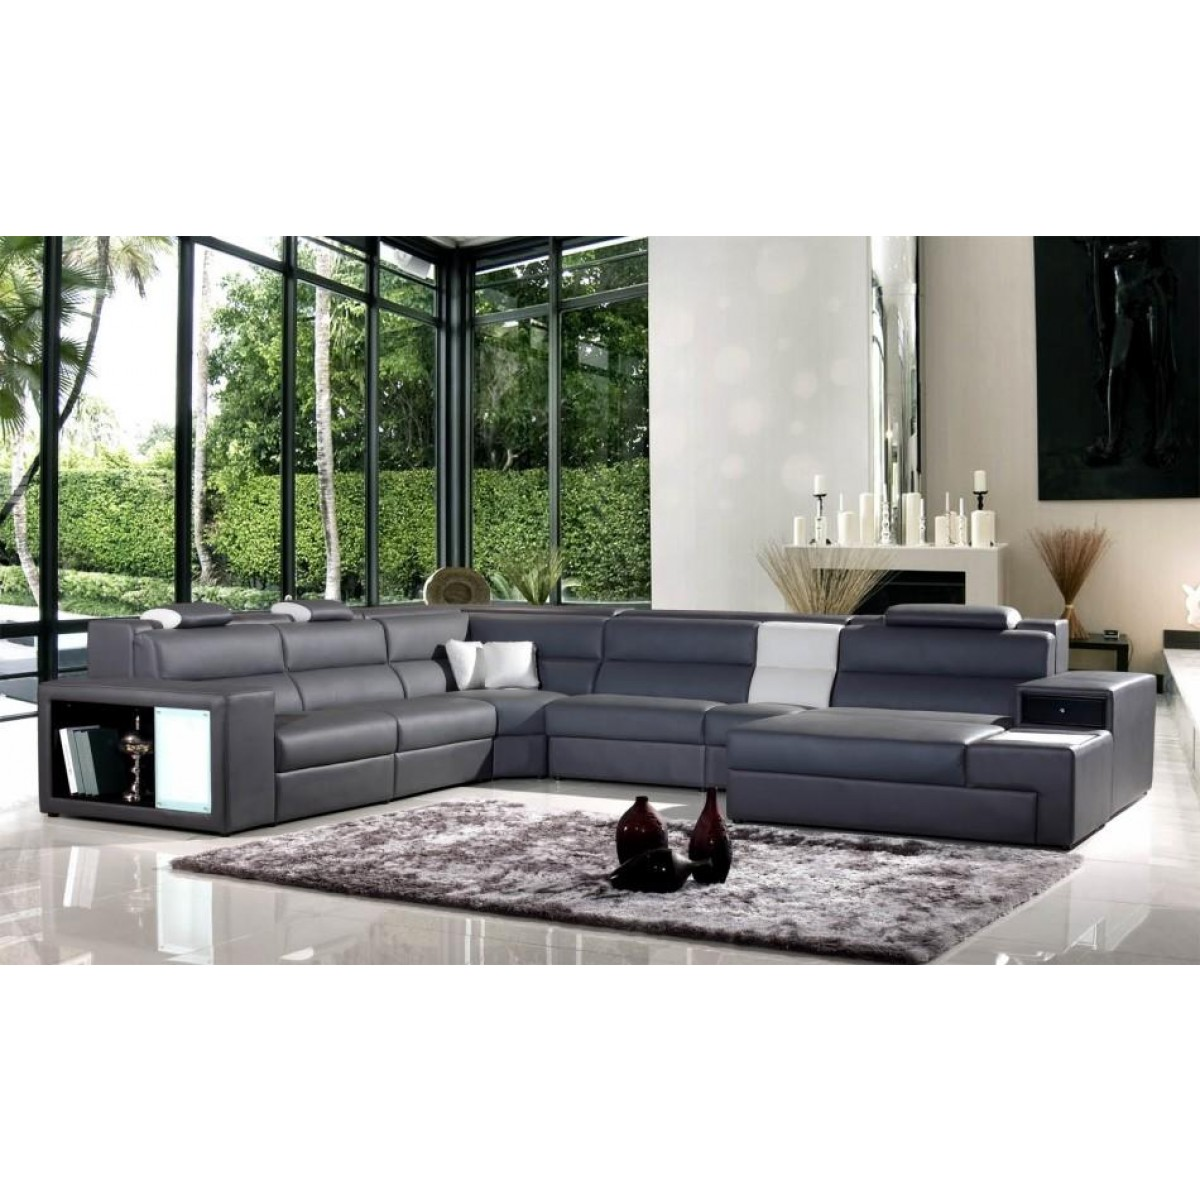 grey contemporary leather sectional sofa modern furniture luxury